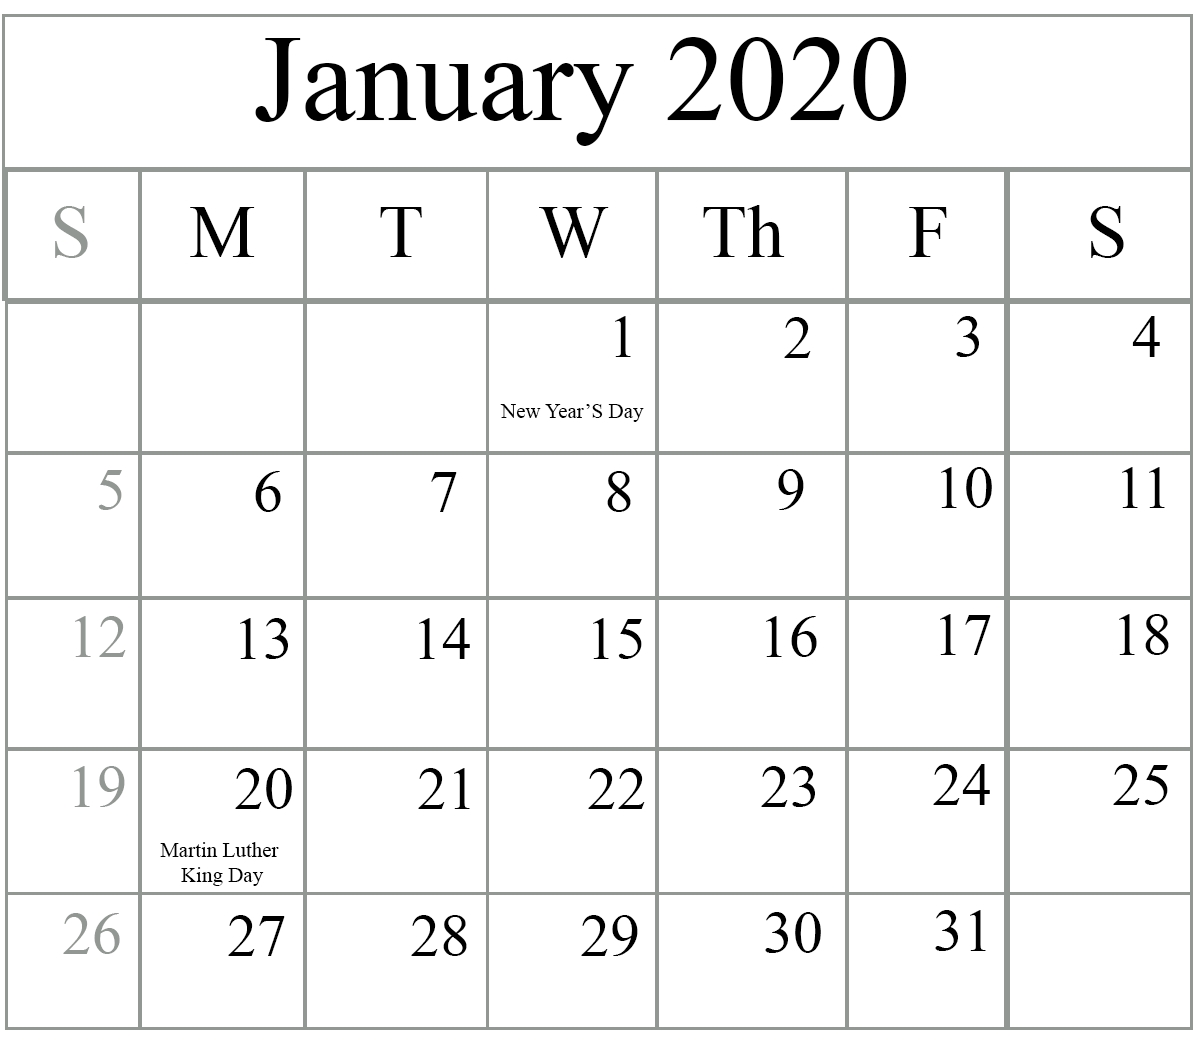 How To Schedule Your Month With January 2020 Printable-January 2020 Calendar Wiki